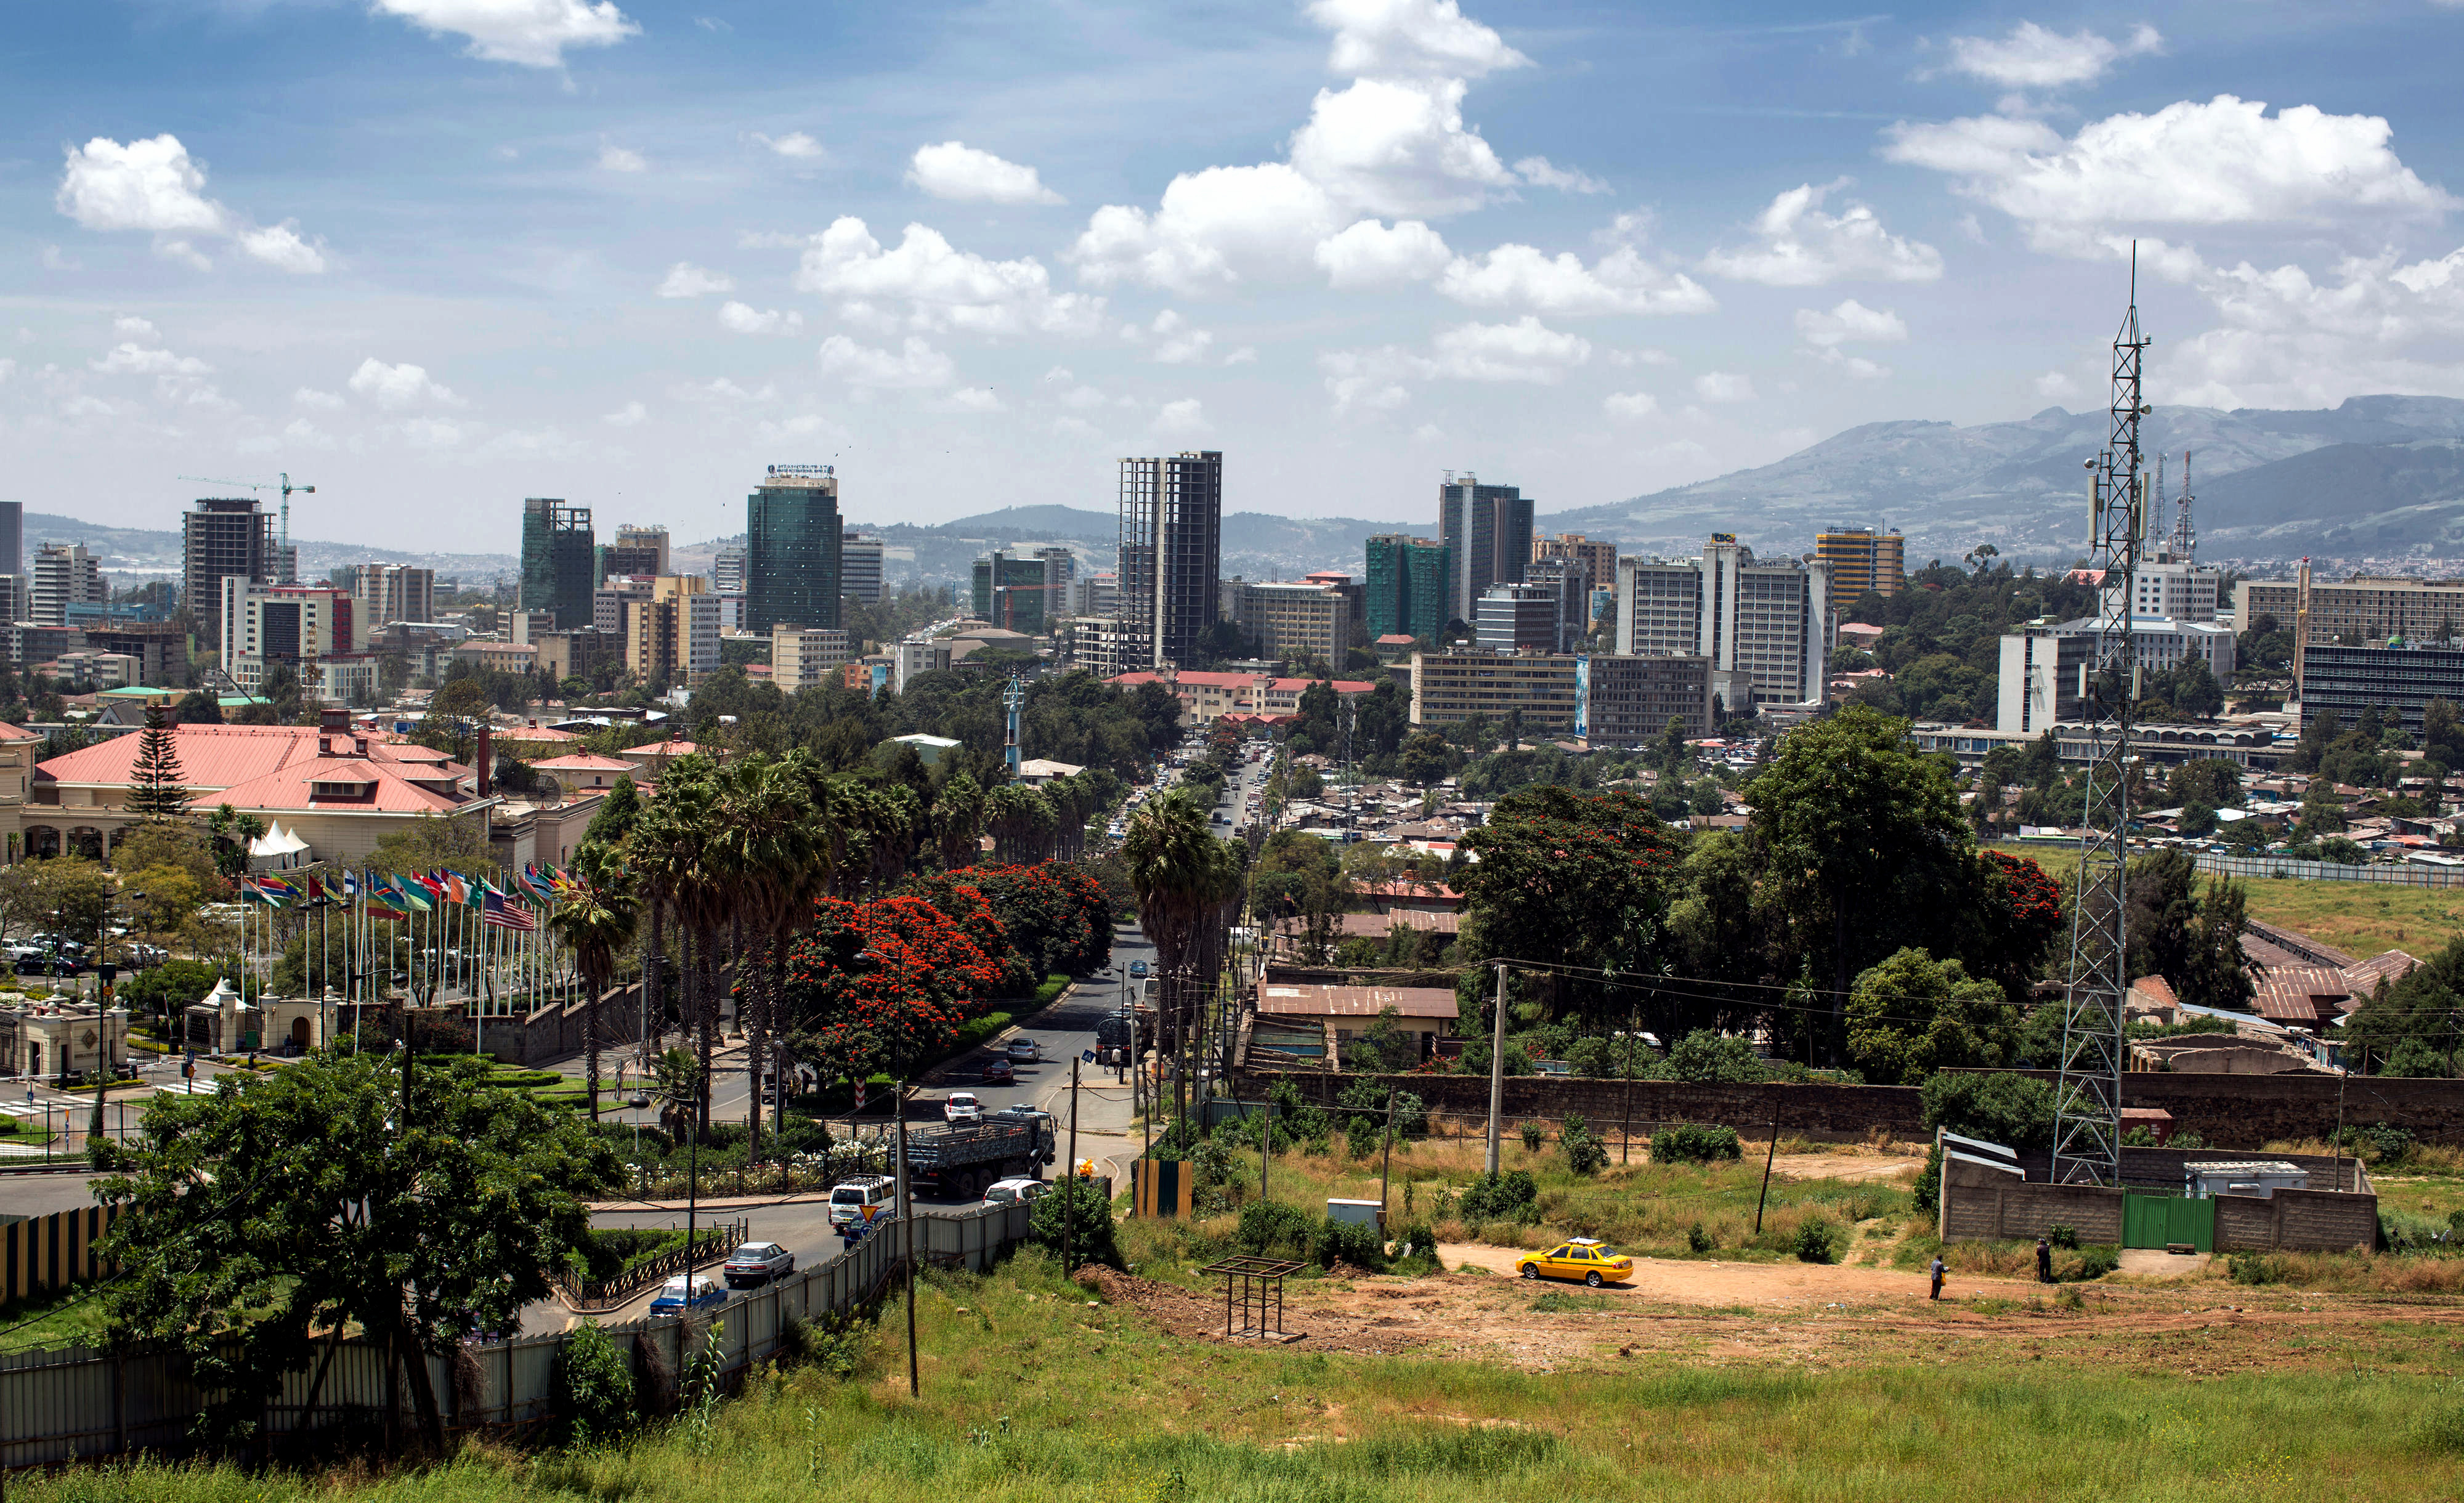 View of Addis Ababa, the capital of Ethiopia